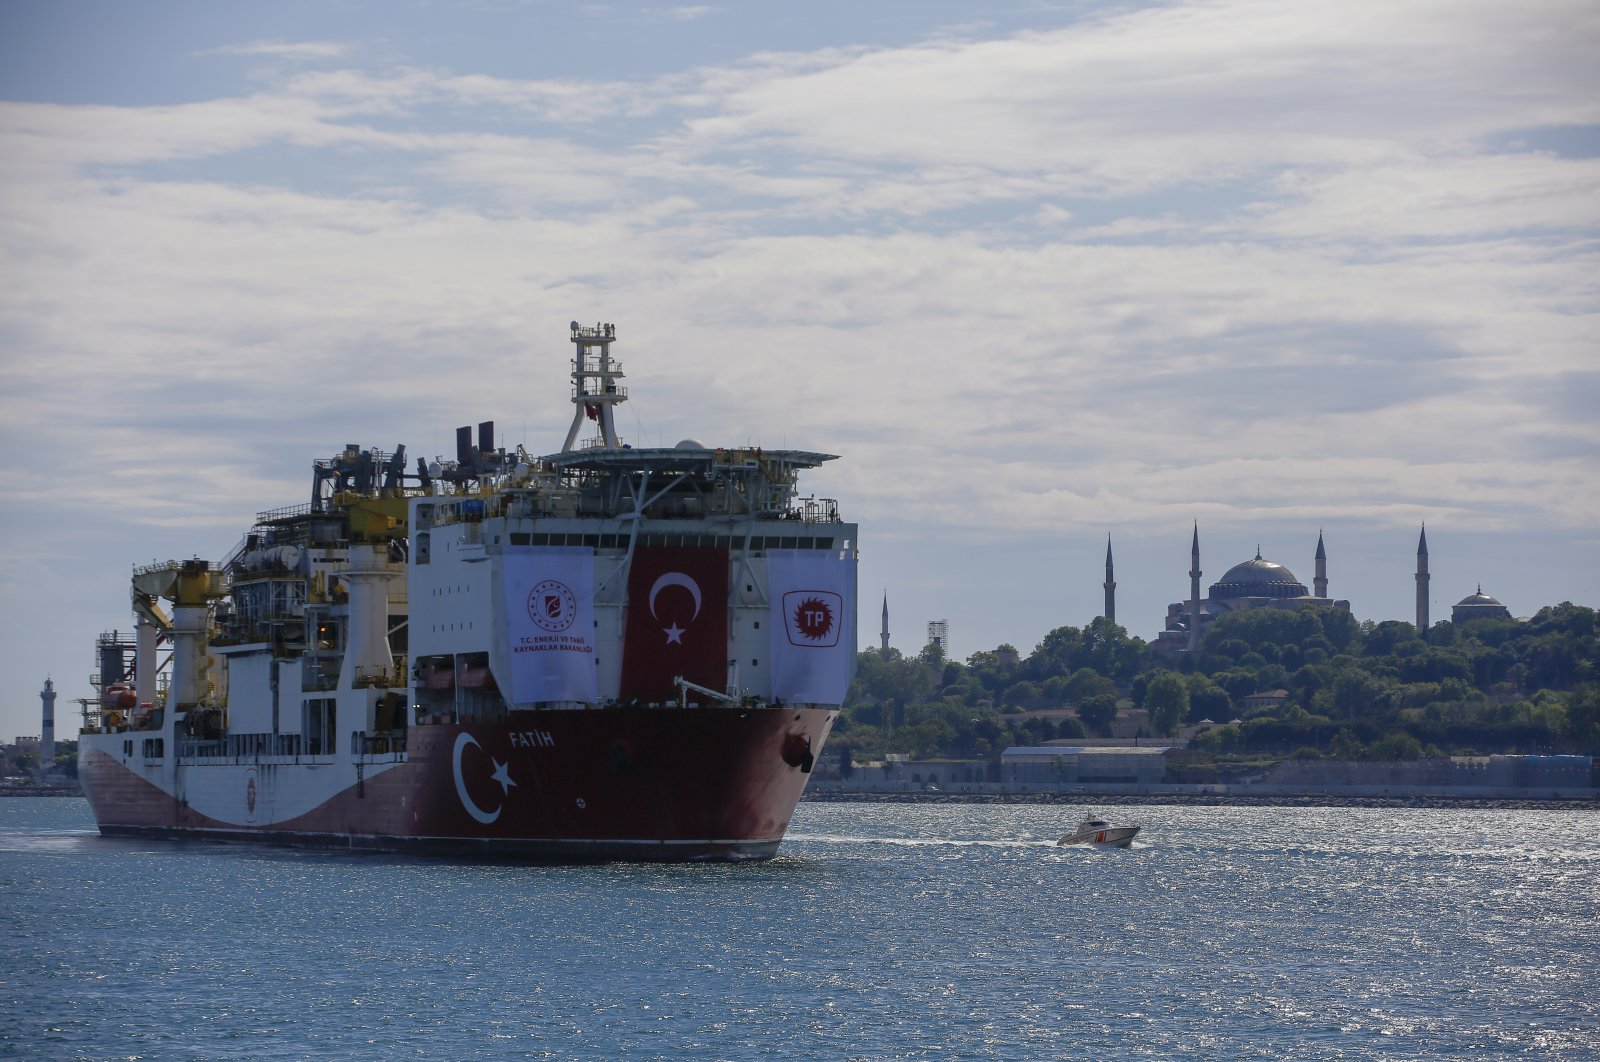 Turkey's drillship, Fatih, crosses the Bosporus as it heads toward the Black Sea with the Hagia Sophia Grand Mosque in the background, Istanbul, May. 29, 2020. (AP Photo)